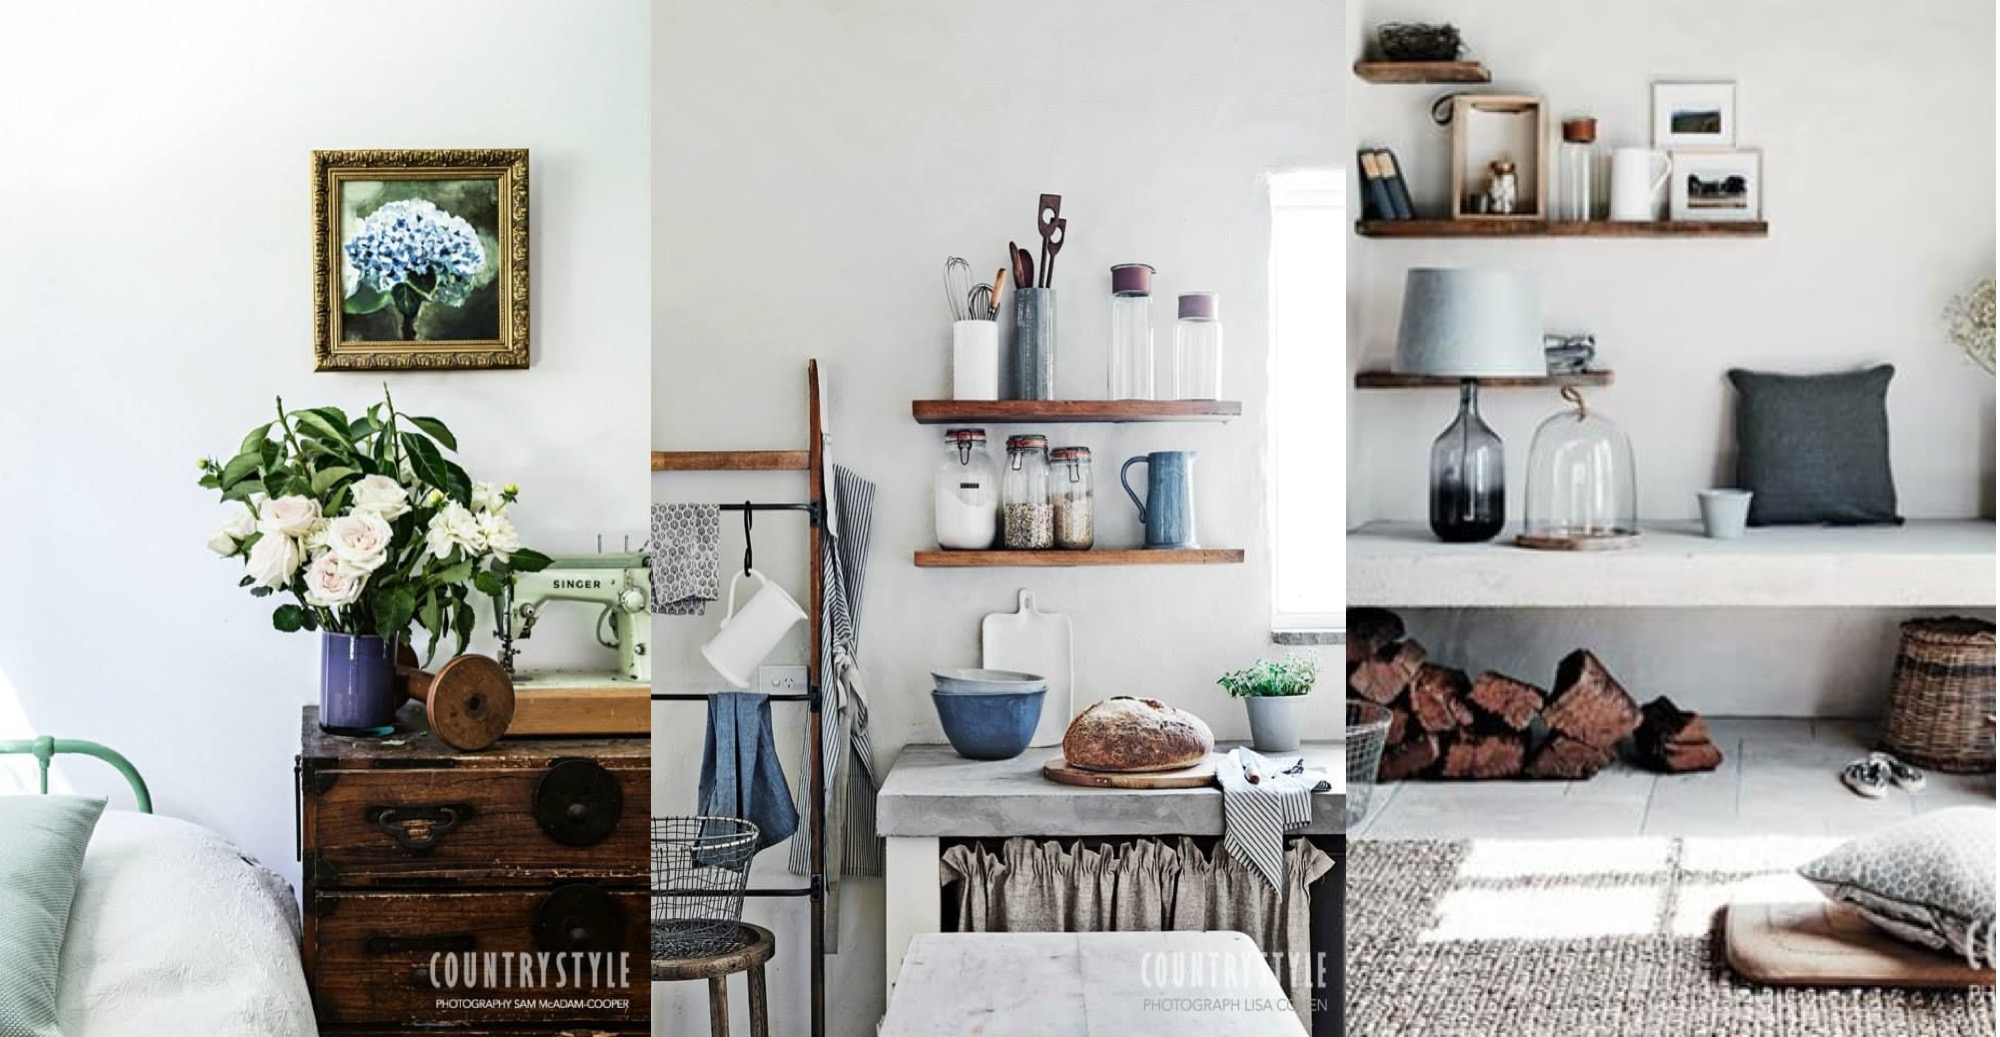 Have the country kitchen wall 23 rustic farmhouse decor ideas rustic farmhouse decor rustic Home design concepts ebensburg pa